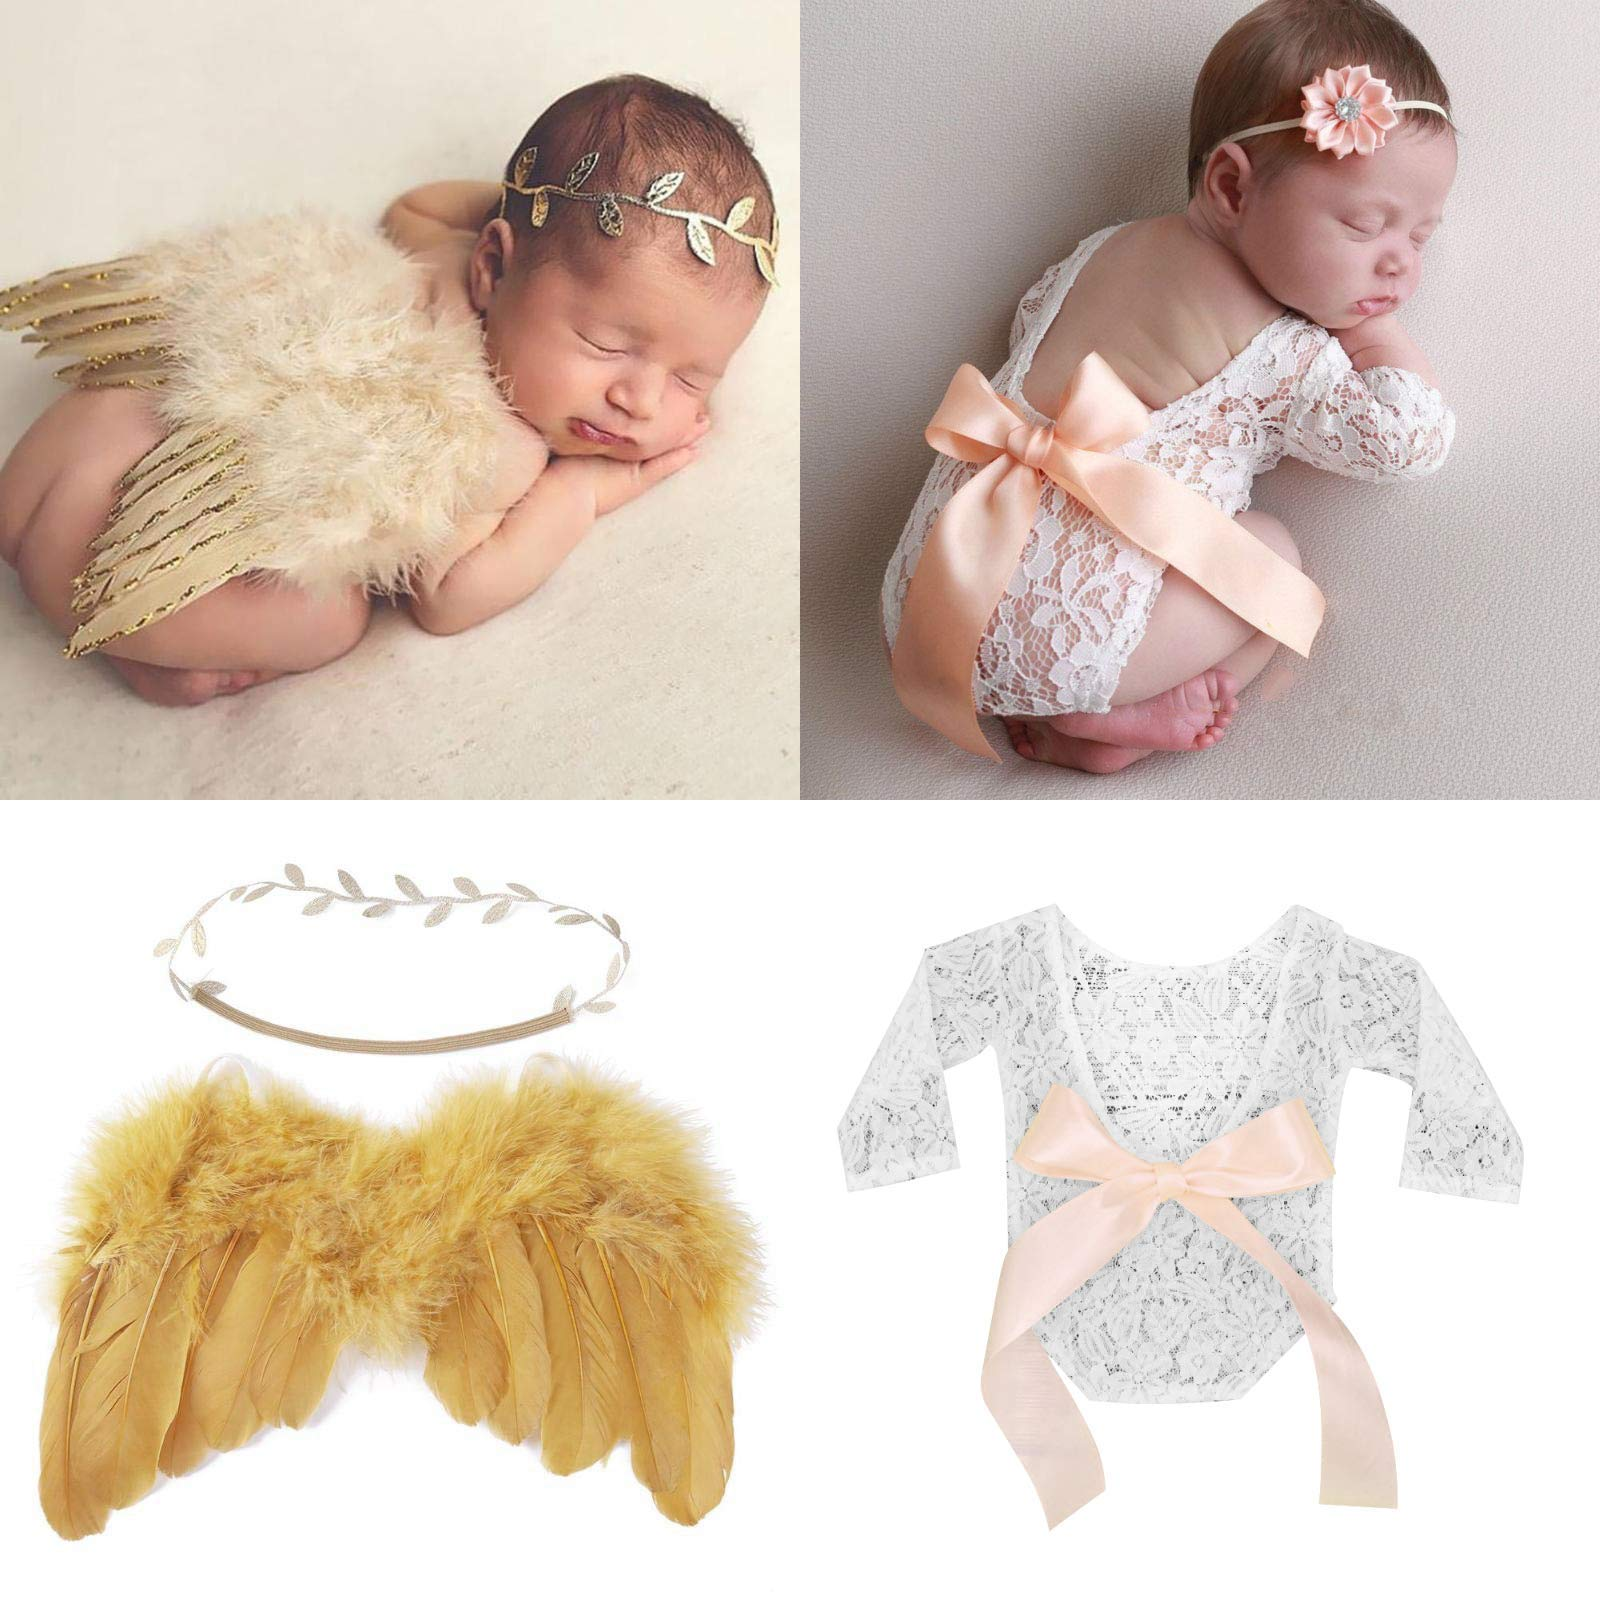 Newborn Photography Prop Outfits Girl Baby Photo 4 pcs Posing Prop Bundle Lace Vintage Romper with Ribbon Bow Angel Wings Matching Headband by IP